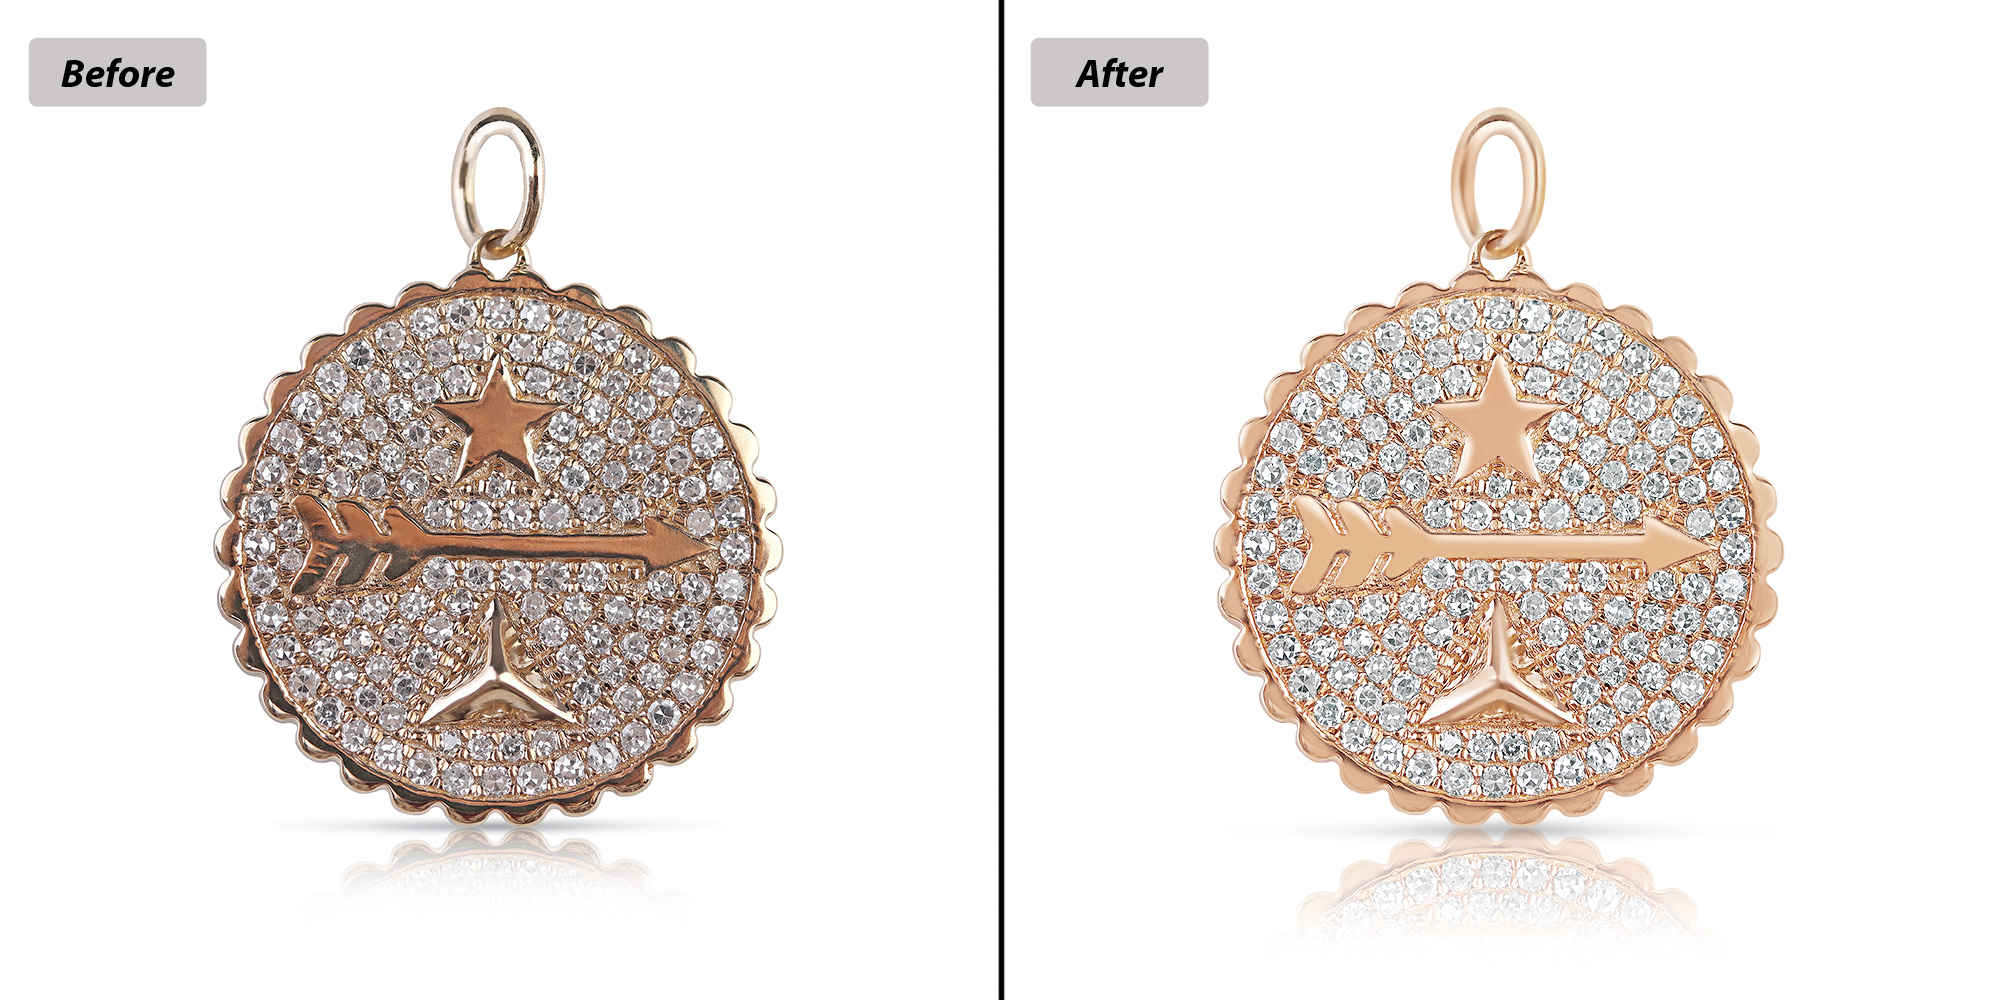 Clipping Charm_jewellery retouch 017